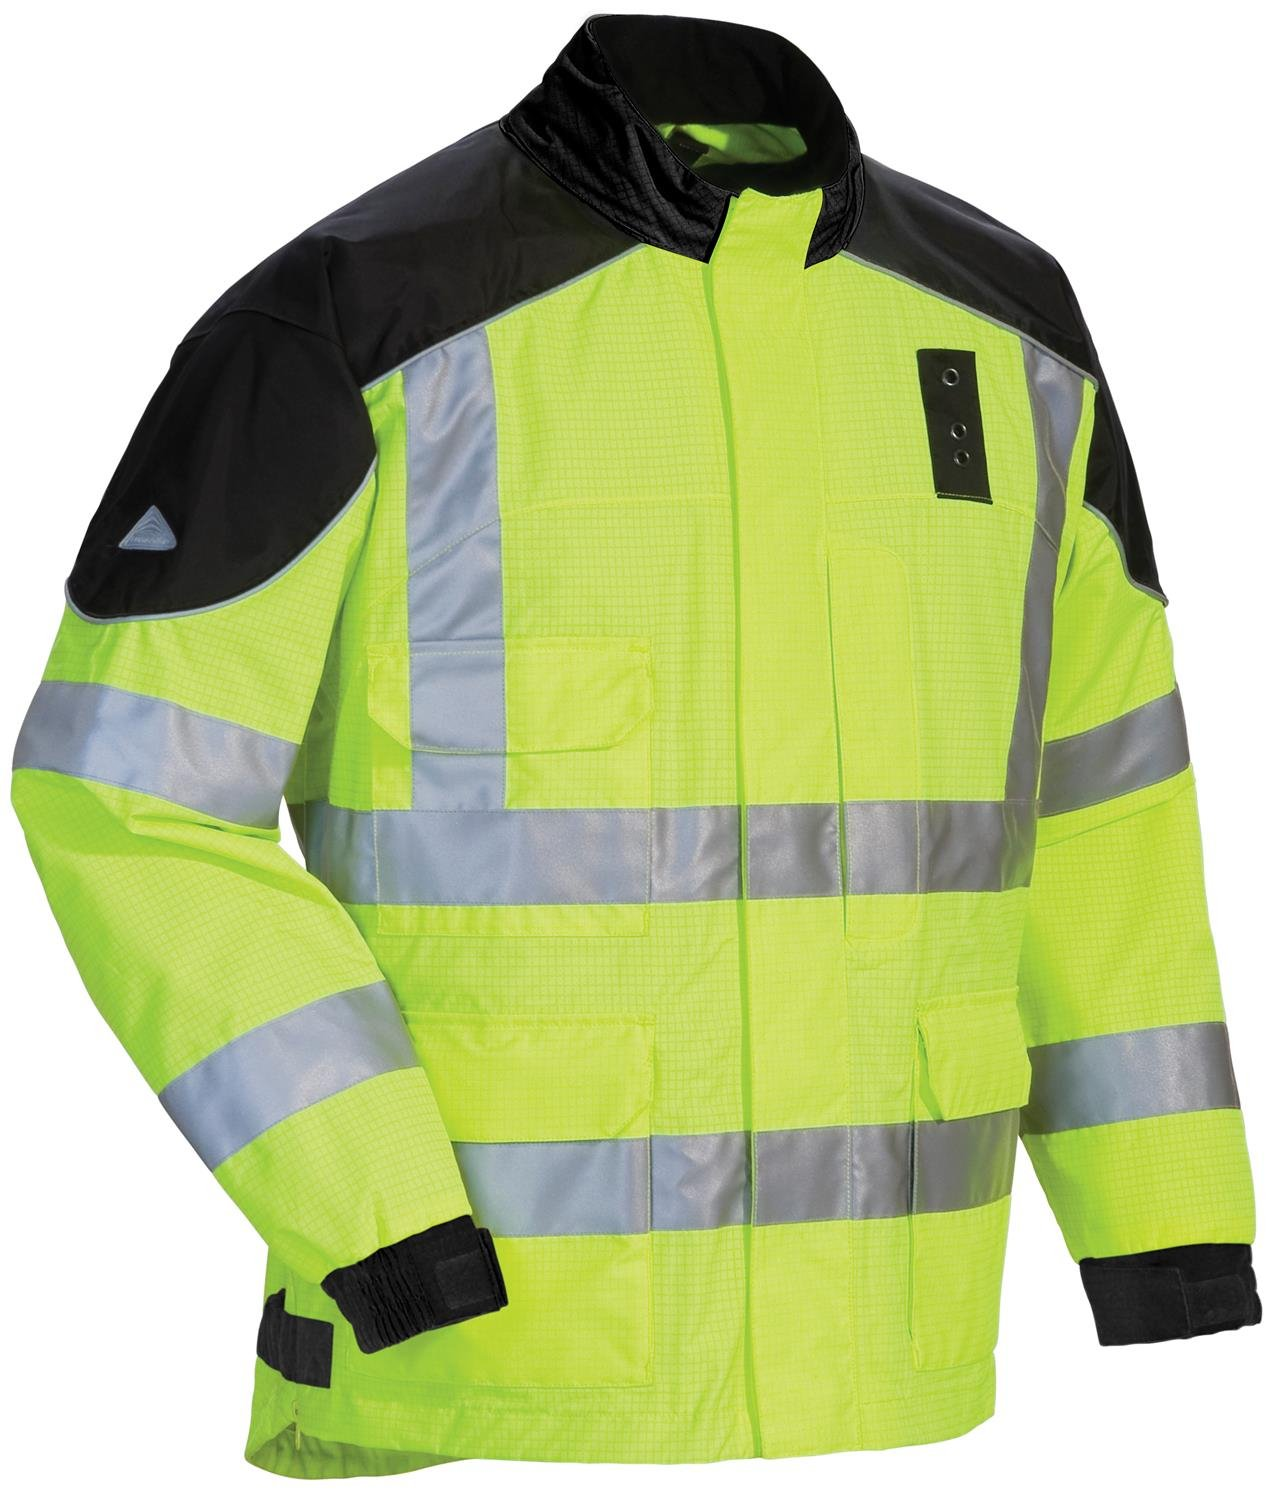 Tour Master Sentinel LE Rain Jacket - Large/Hi-Visibility Yellow by Tourmaster